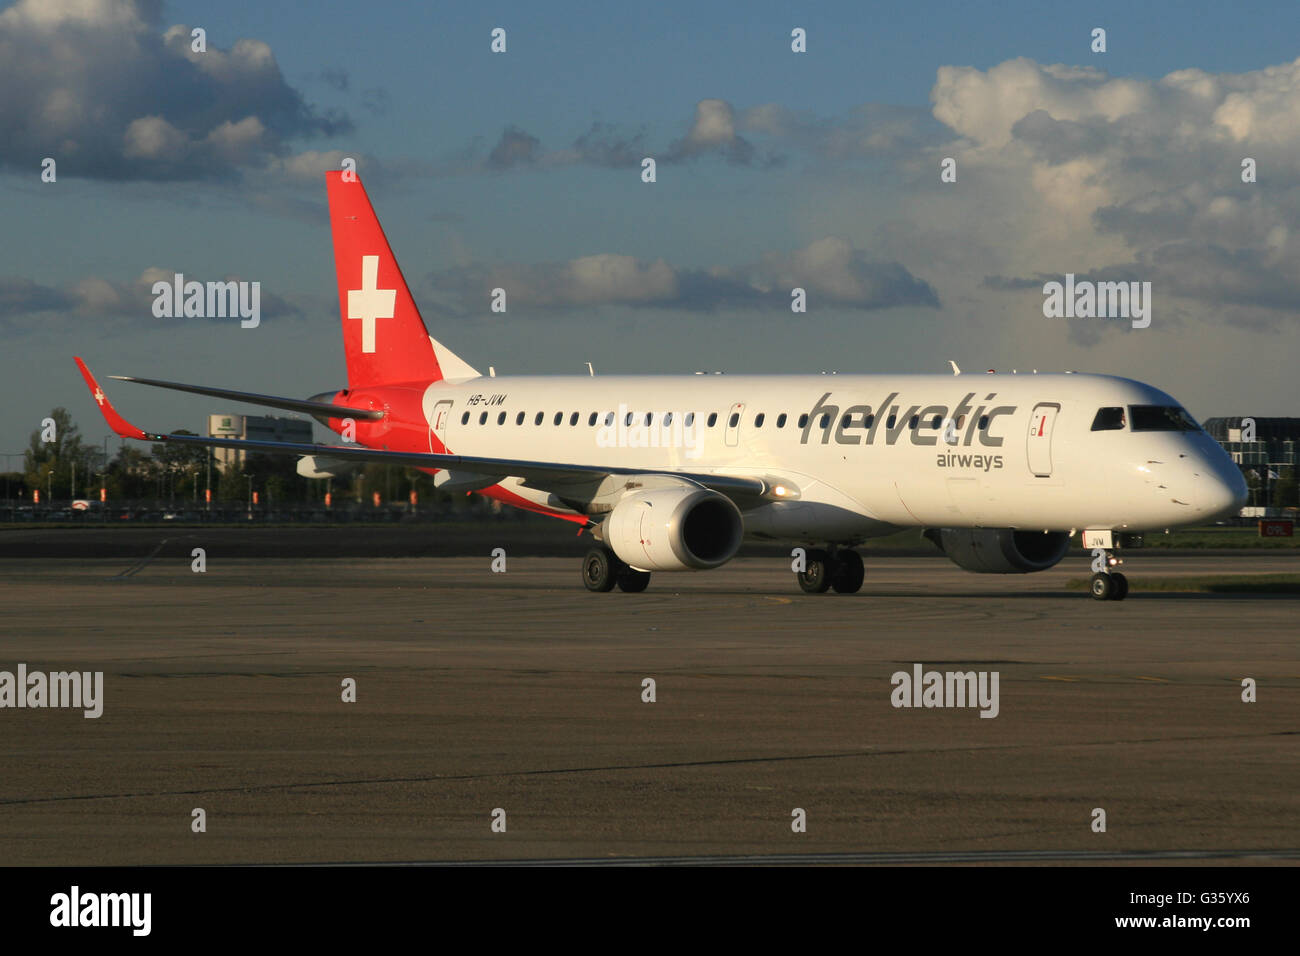 HELVETIC EMBRAER - Stock Image